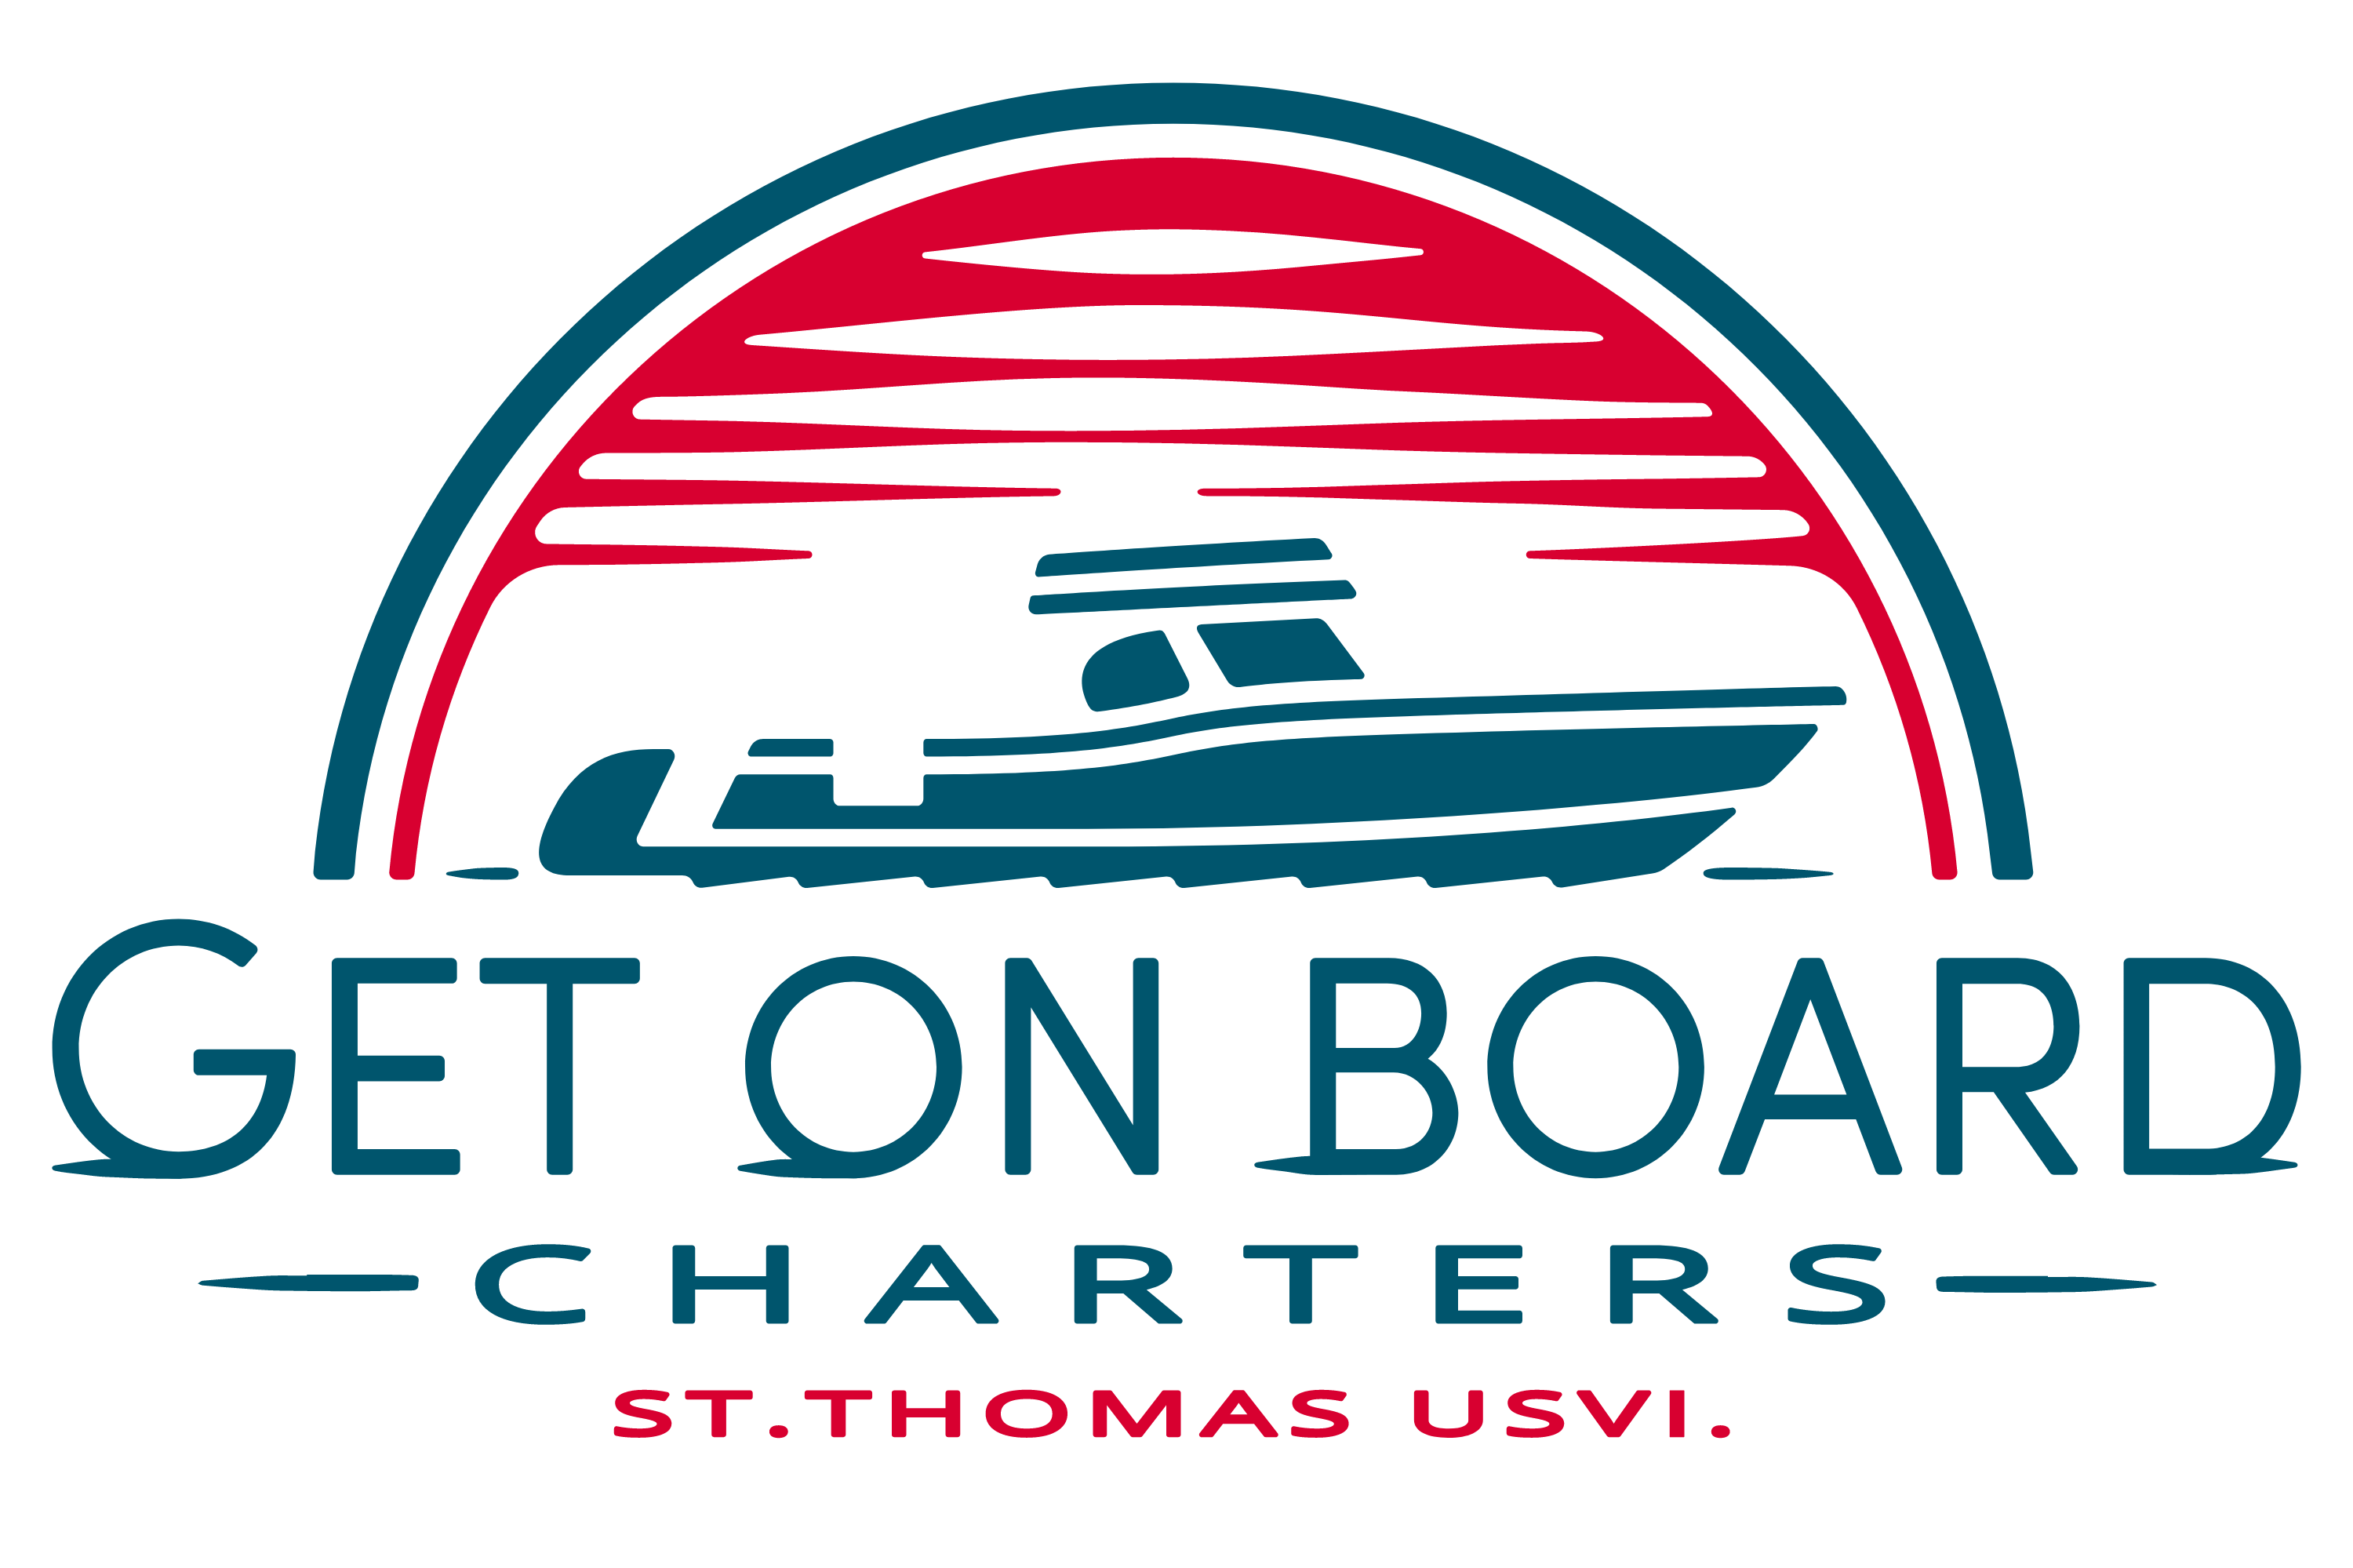 Get on Board Charters